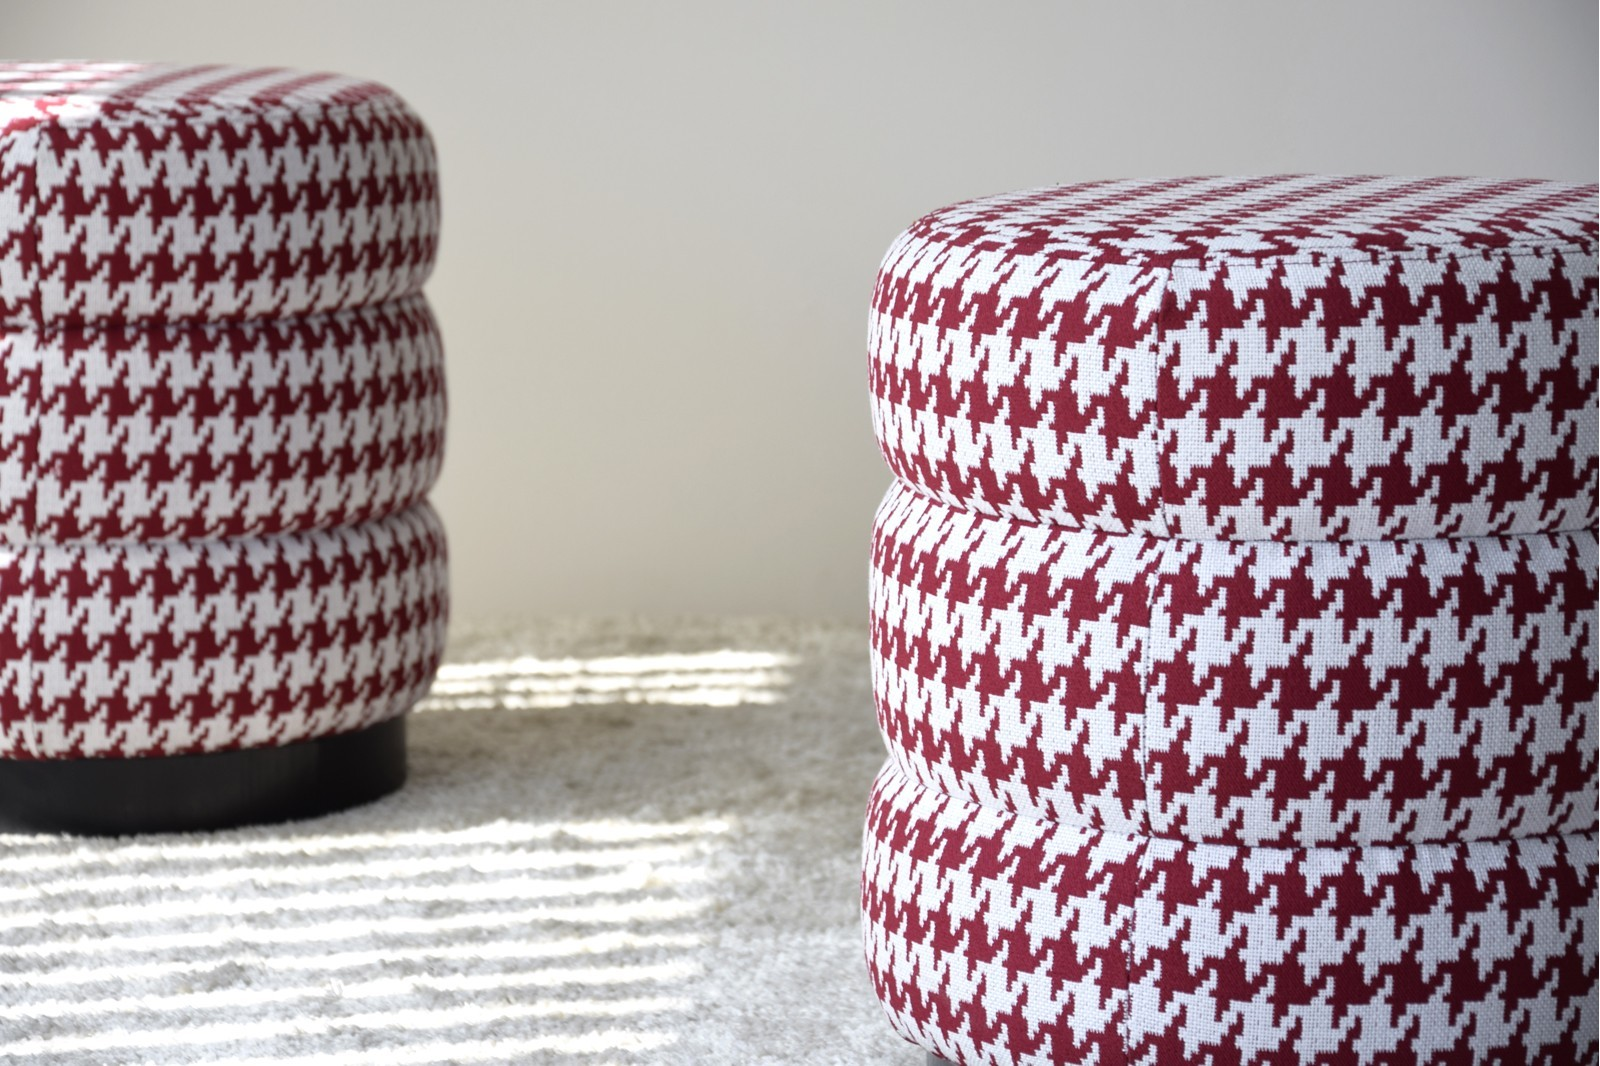 SET 2 STOOLS. HOUNDSTOOTH FABRIC.MAROON AND WHITE